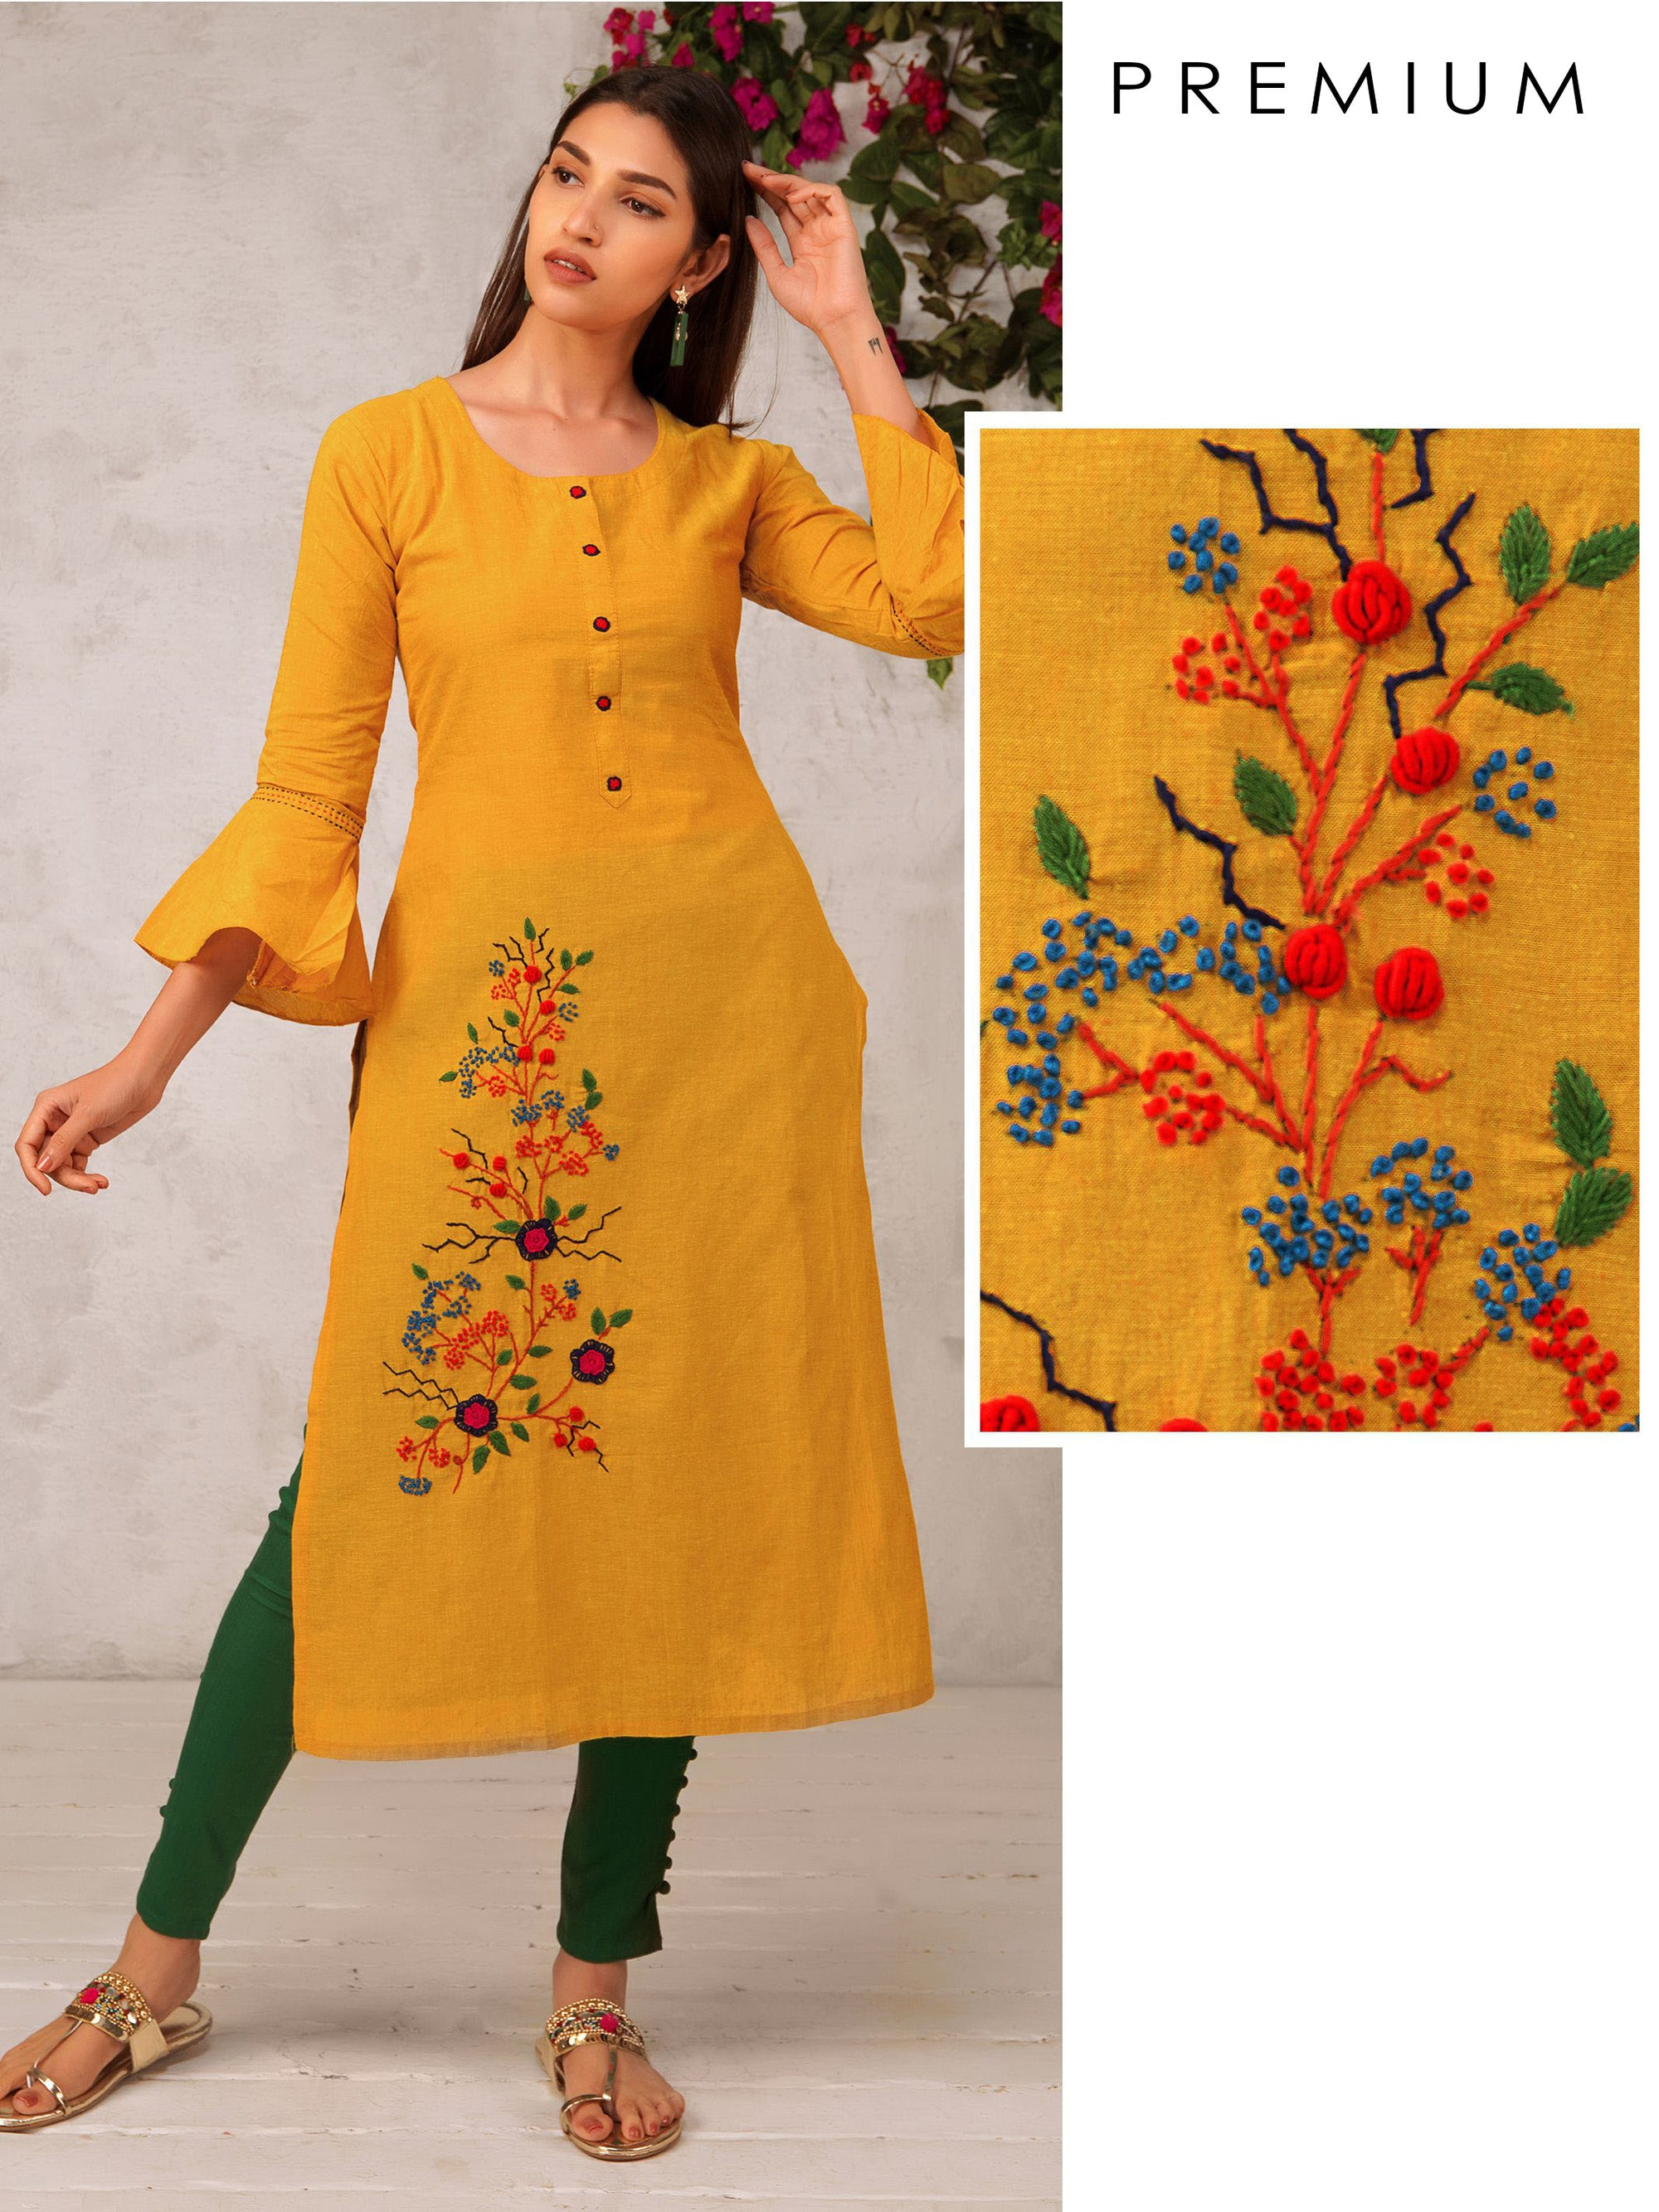 Floral Embroidered Kurta With Running Stitch Design On Bell Sleeves